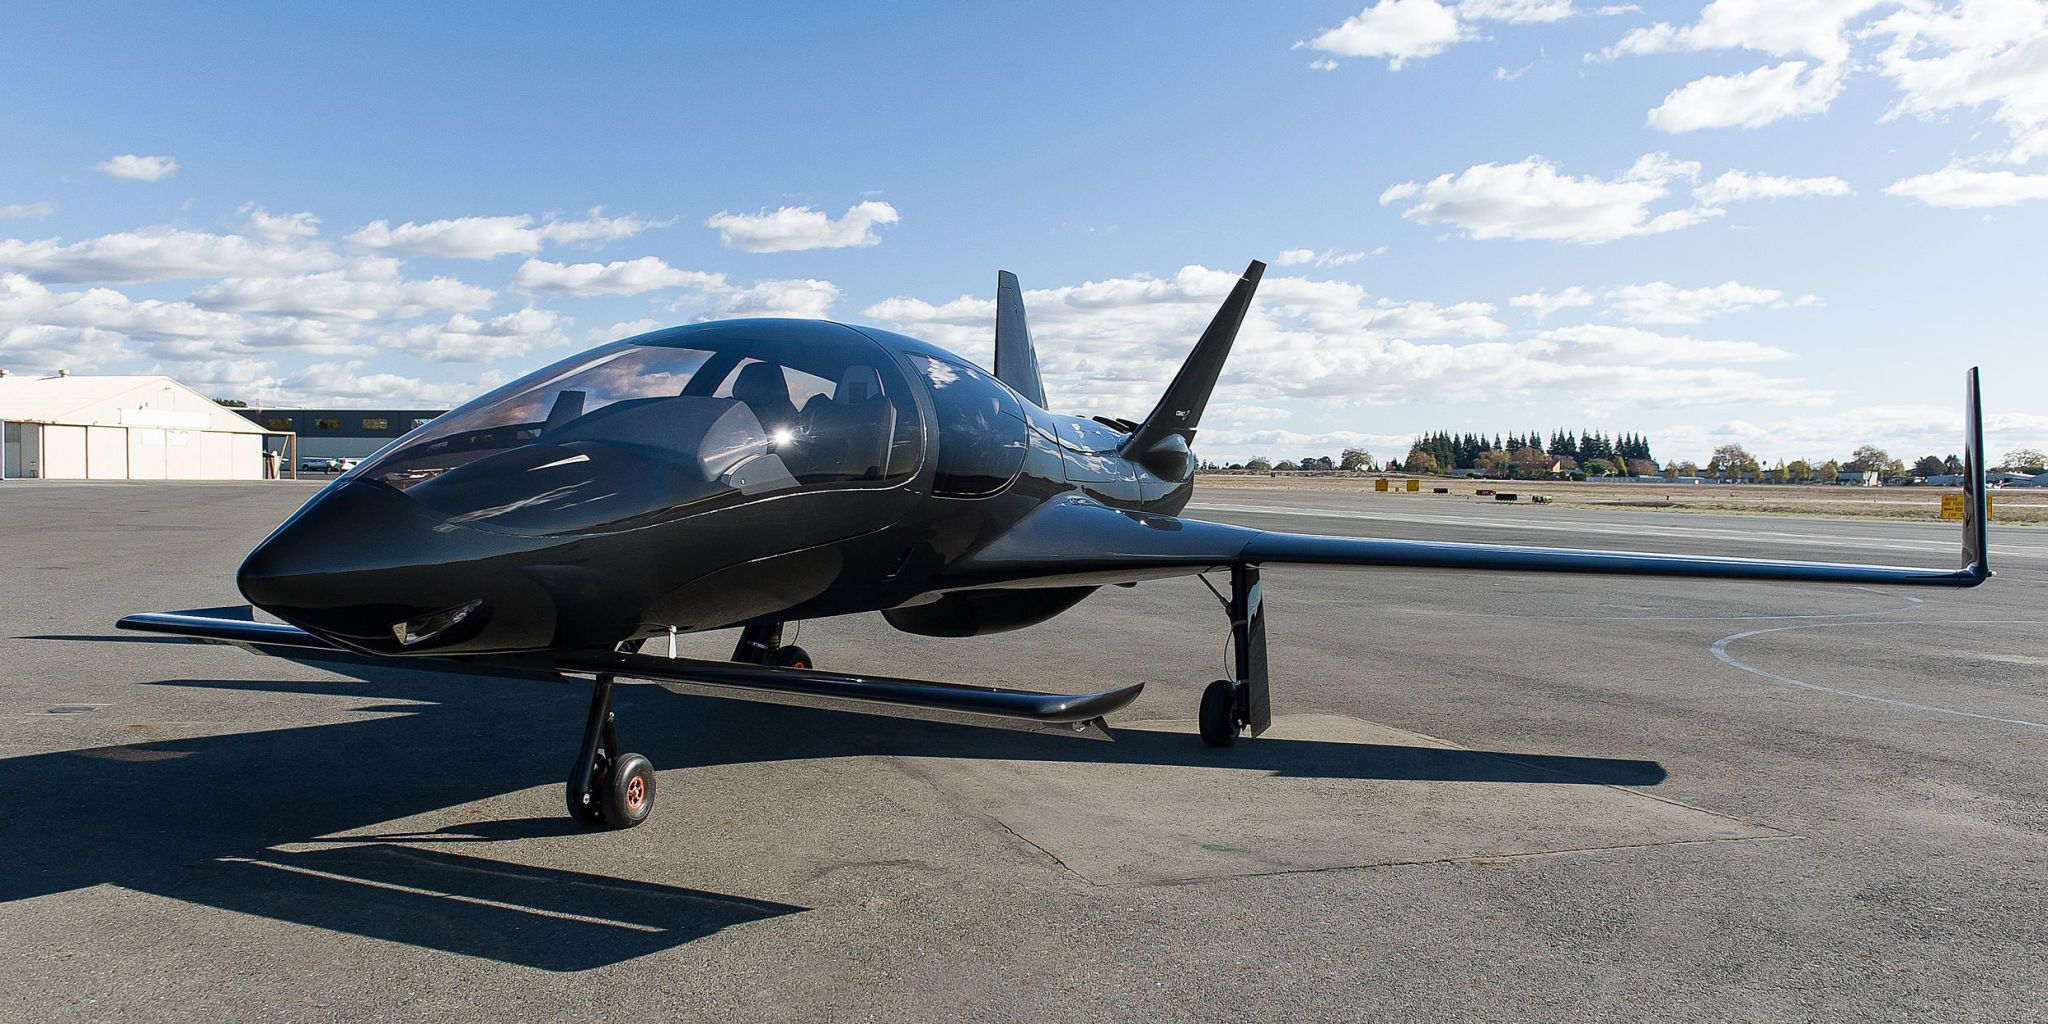 This Sleek Startup Airplane Is the Cobalt Co50 Valkyrie